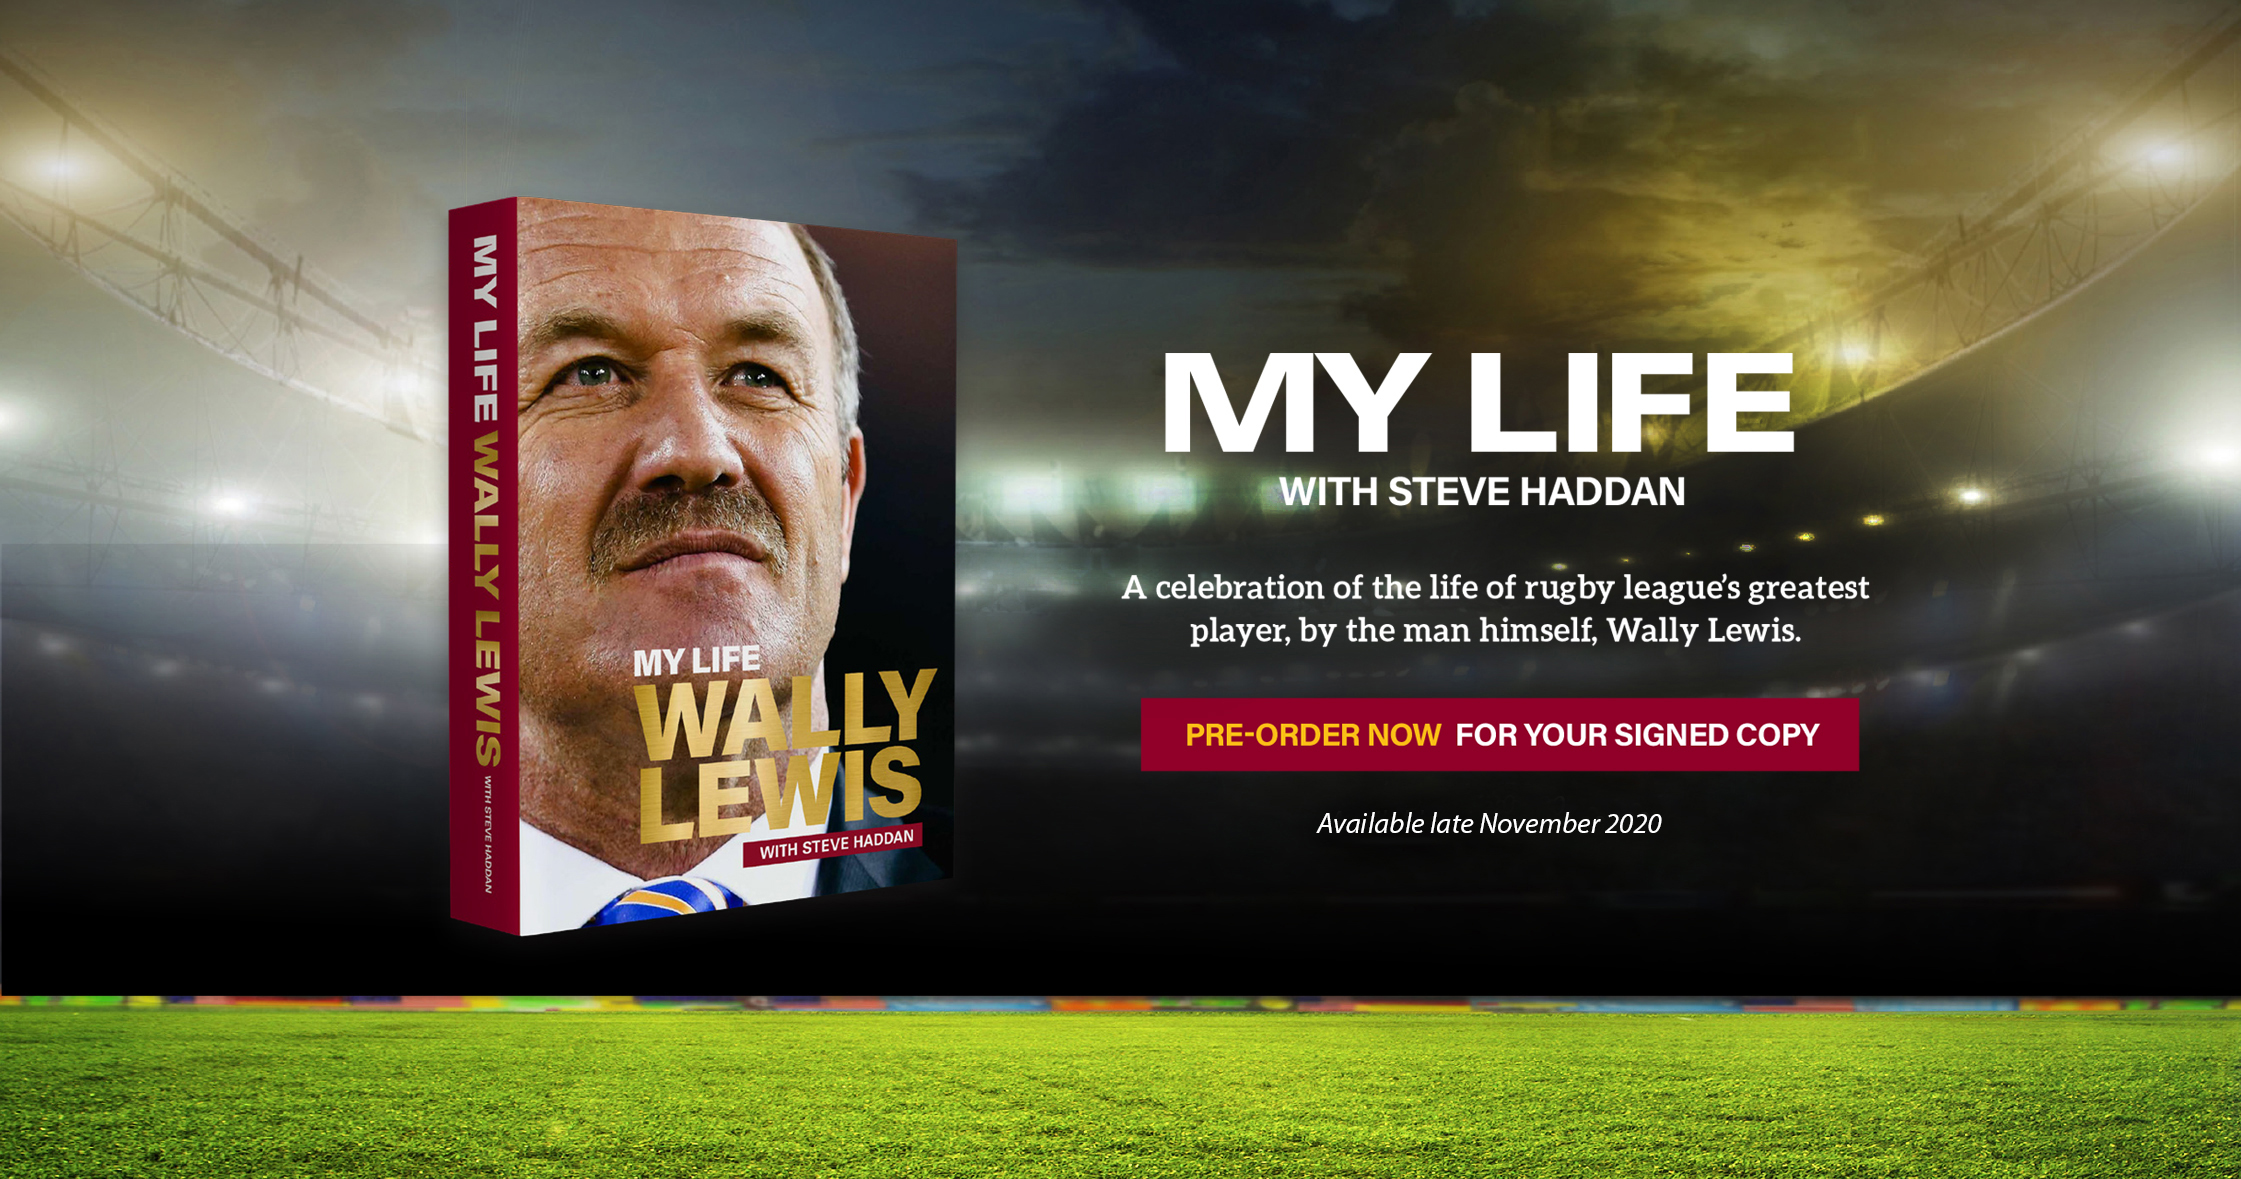 FB_MY LIFE_WallyLewis_Banners_website_Nov2020